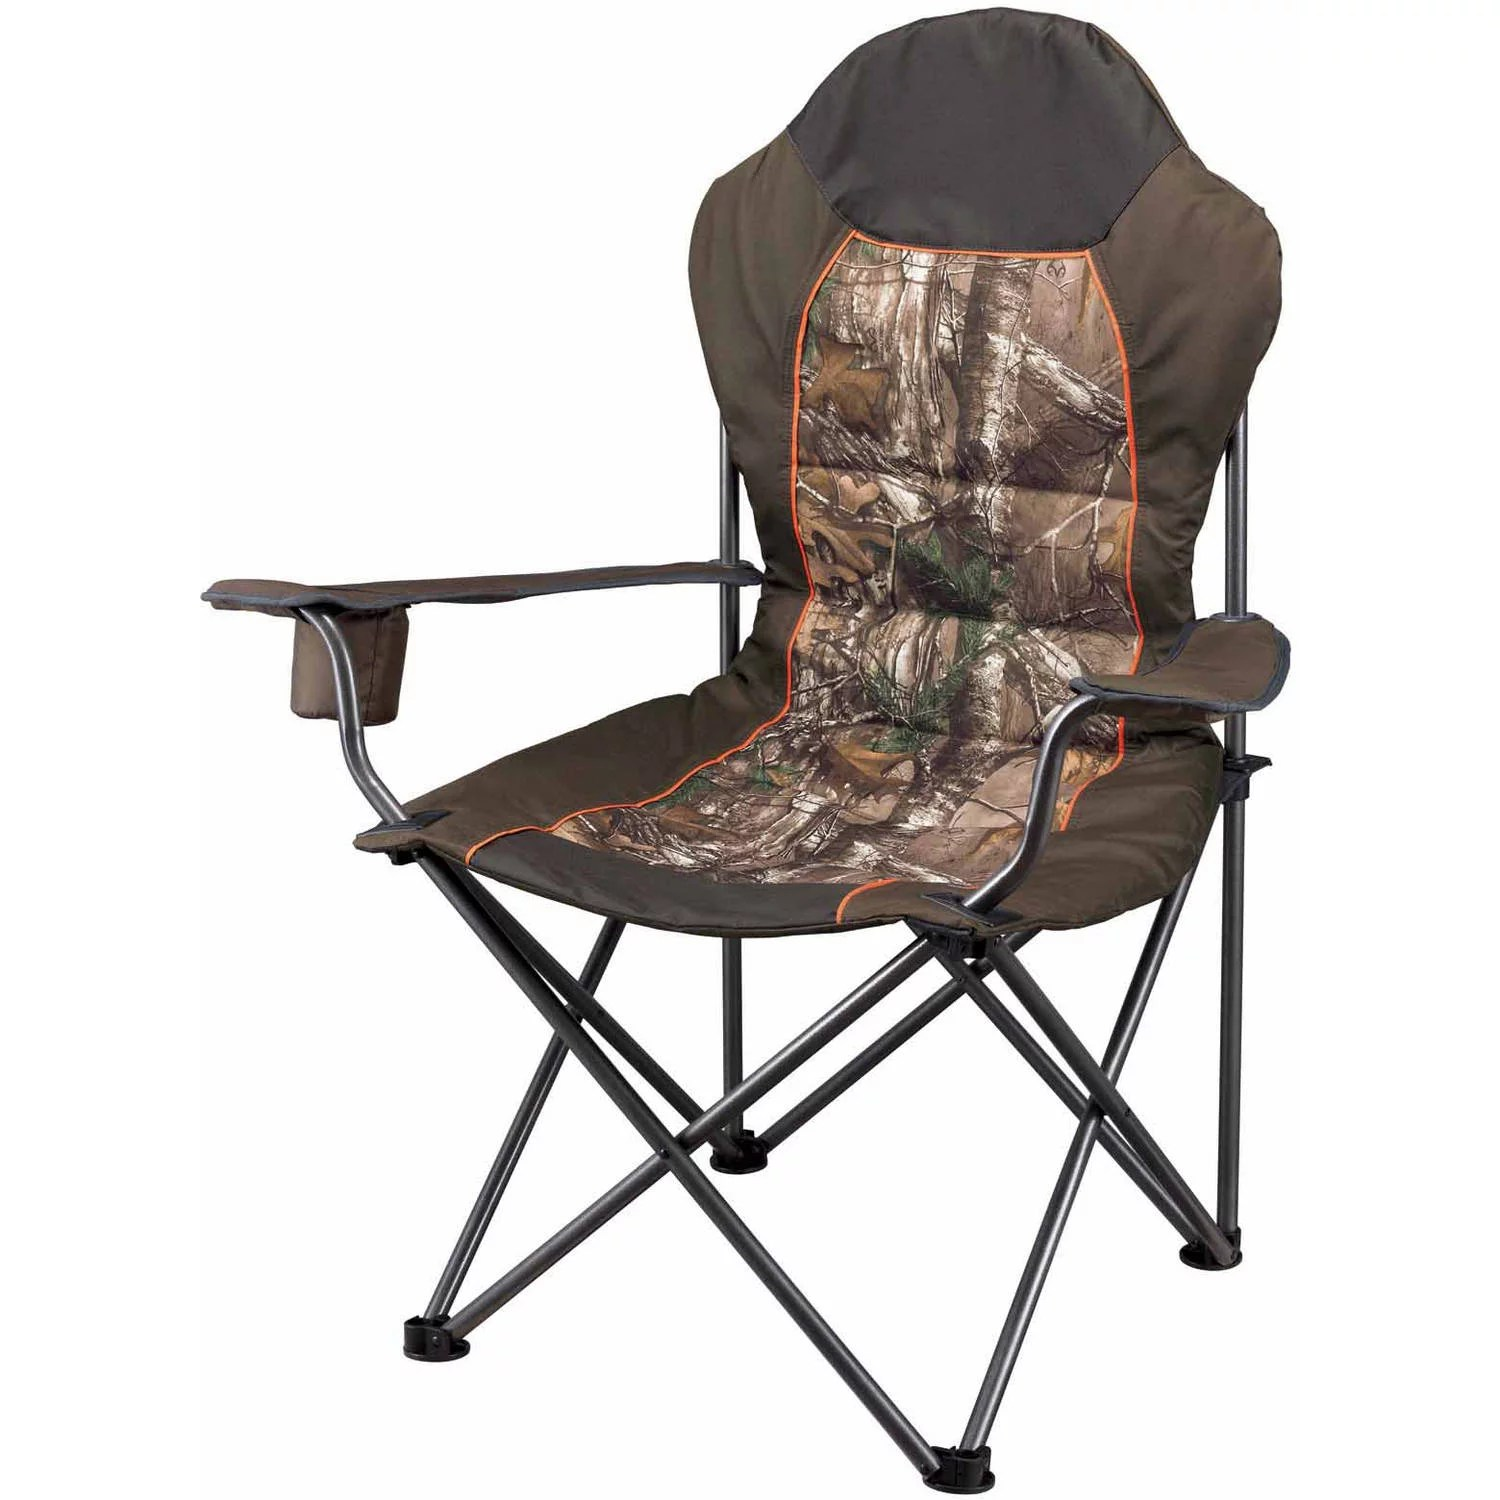 padded camping chair bouncing for babies age ozark trail x realtree xtra deluxe high back quad folding camp walmart com